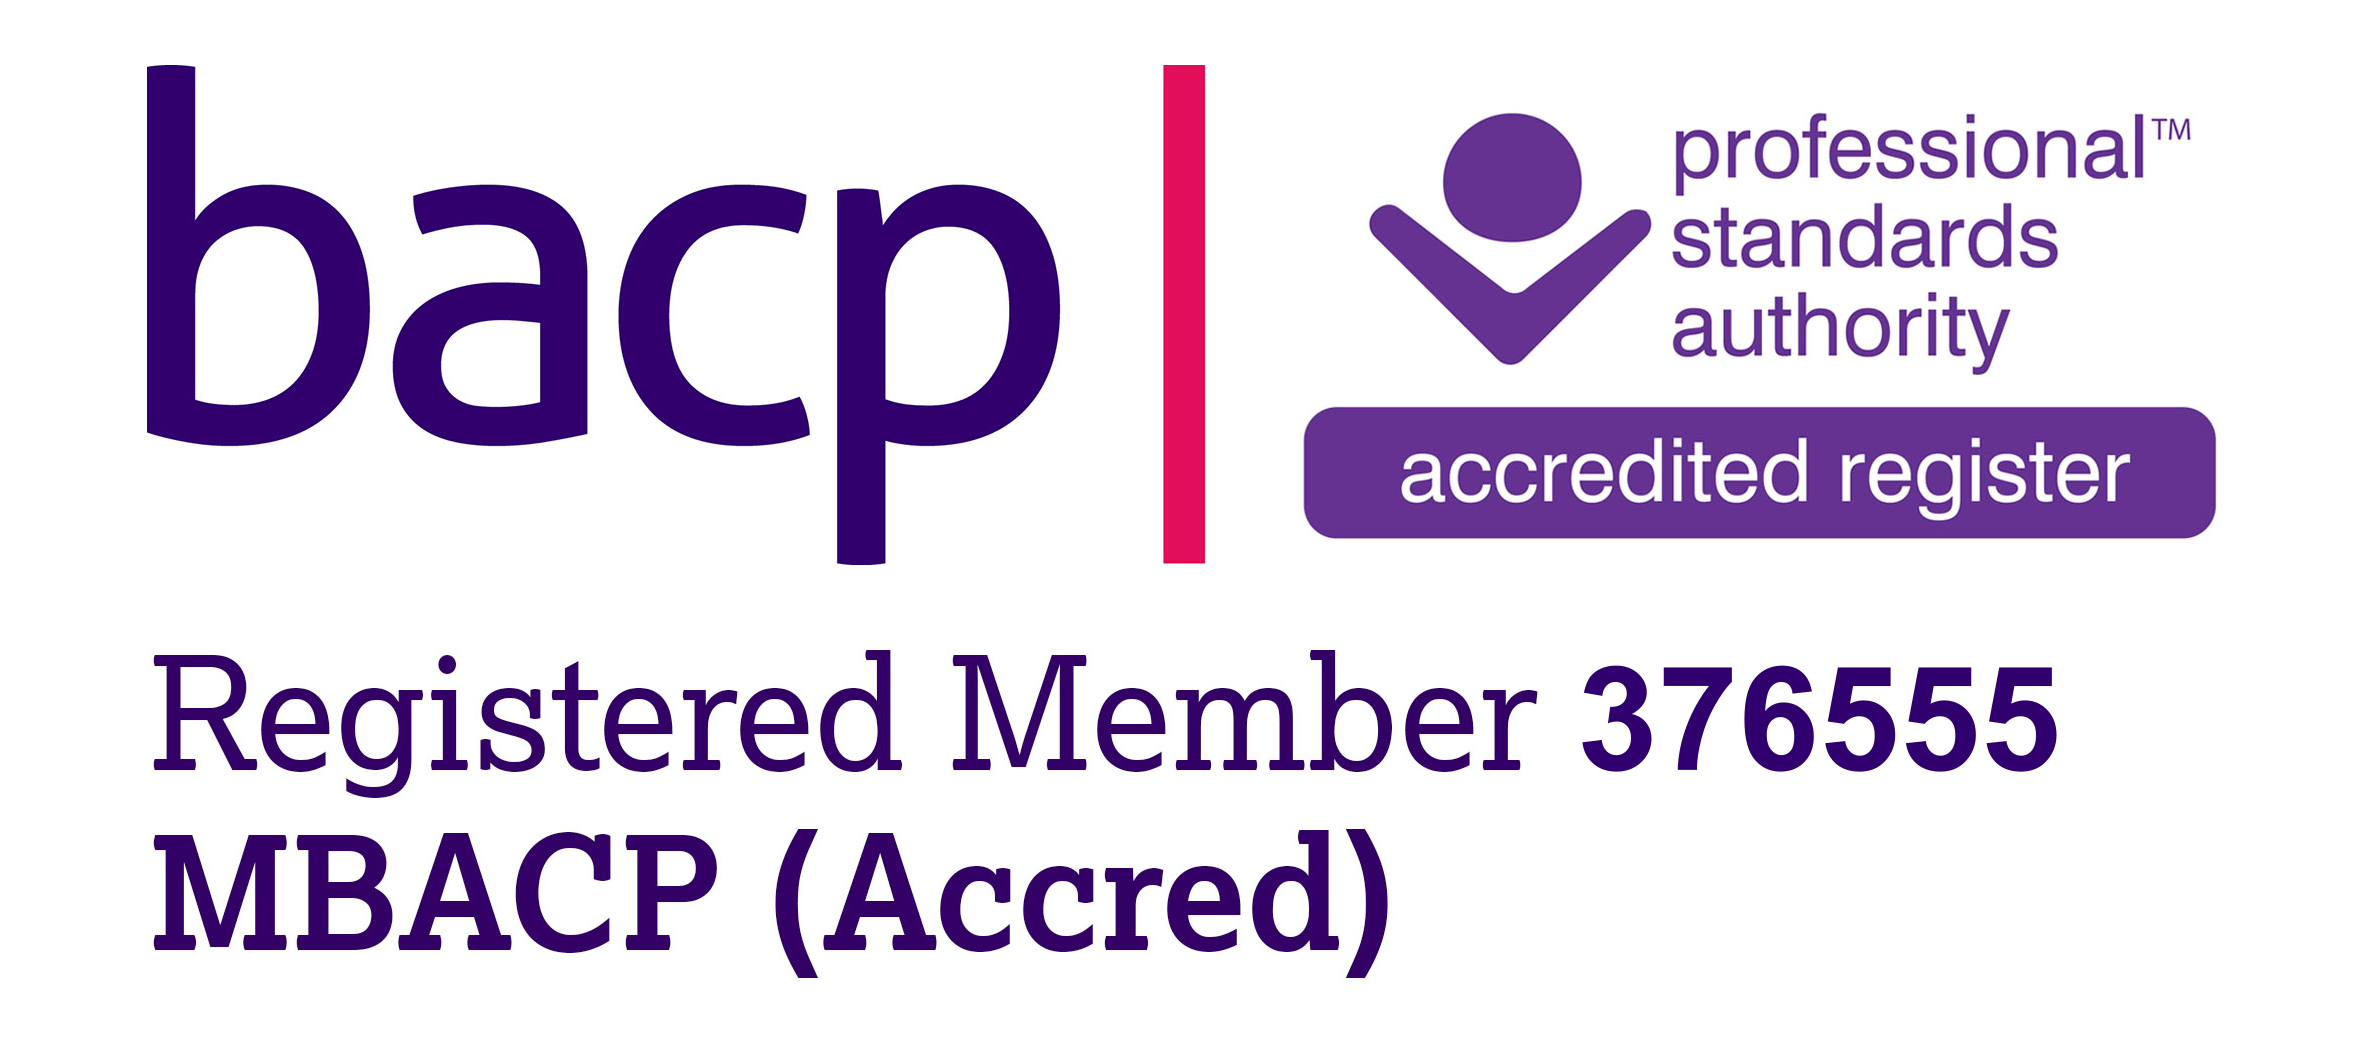 BACP Accredited Member 376555 MBACP